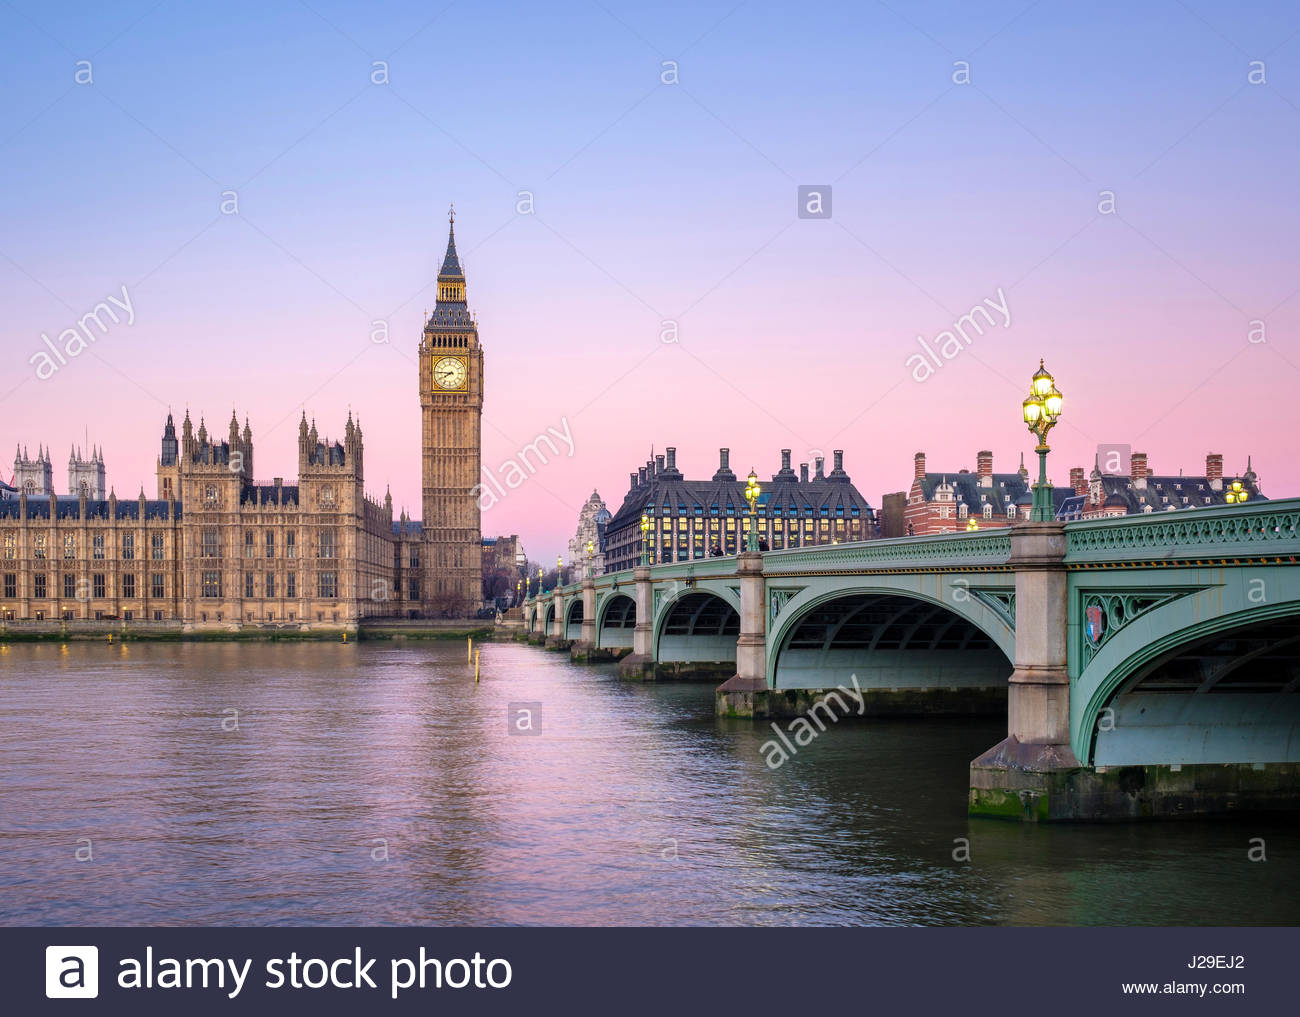 United Kingdom, England, London. Westminster Bridge, Palace of Westminster und der Uhr Turm von Big Ben (Elizabeth Stockbild